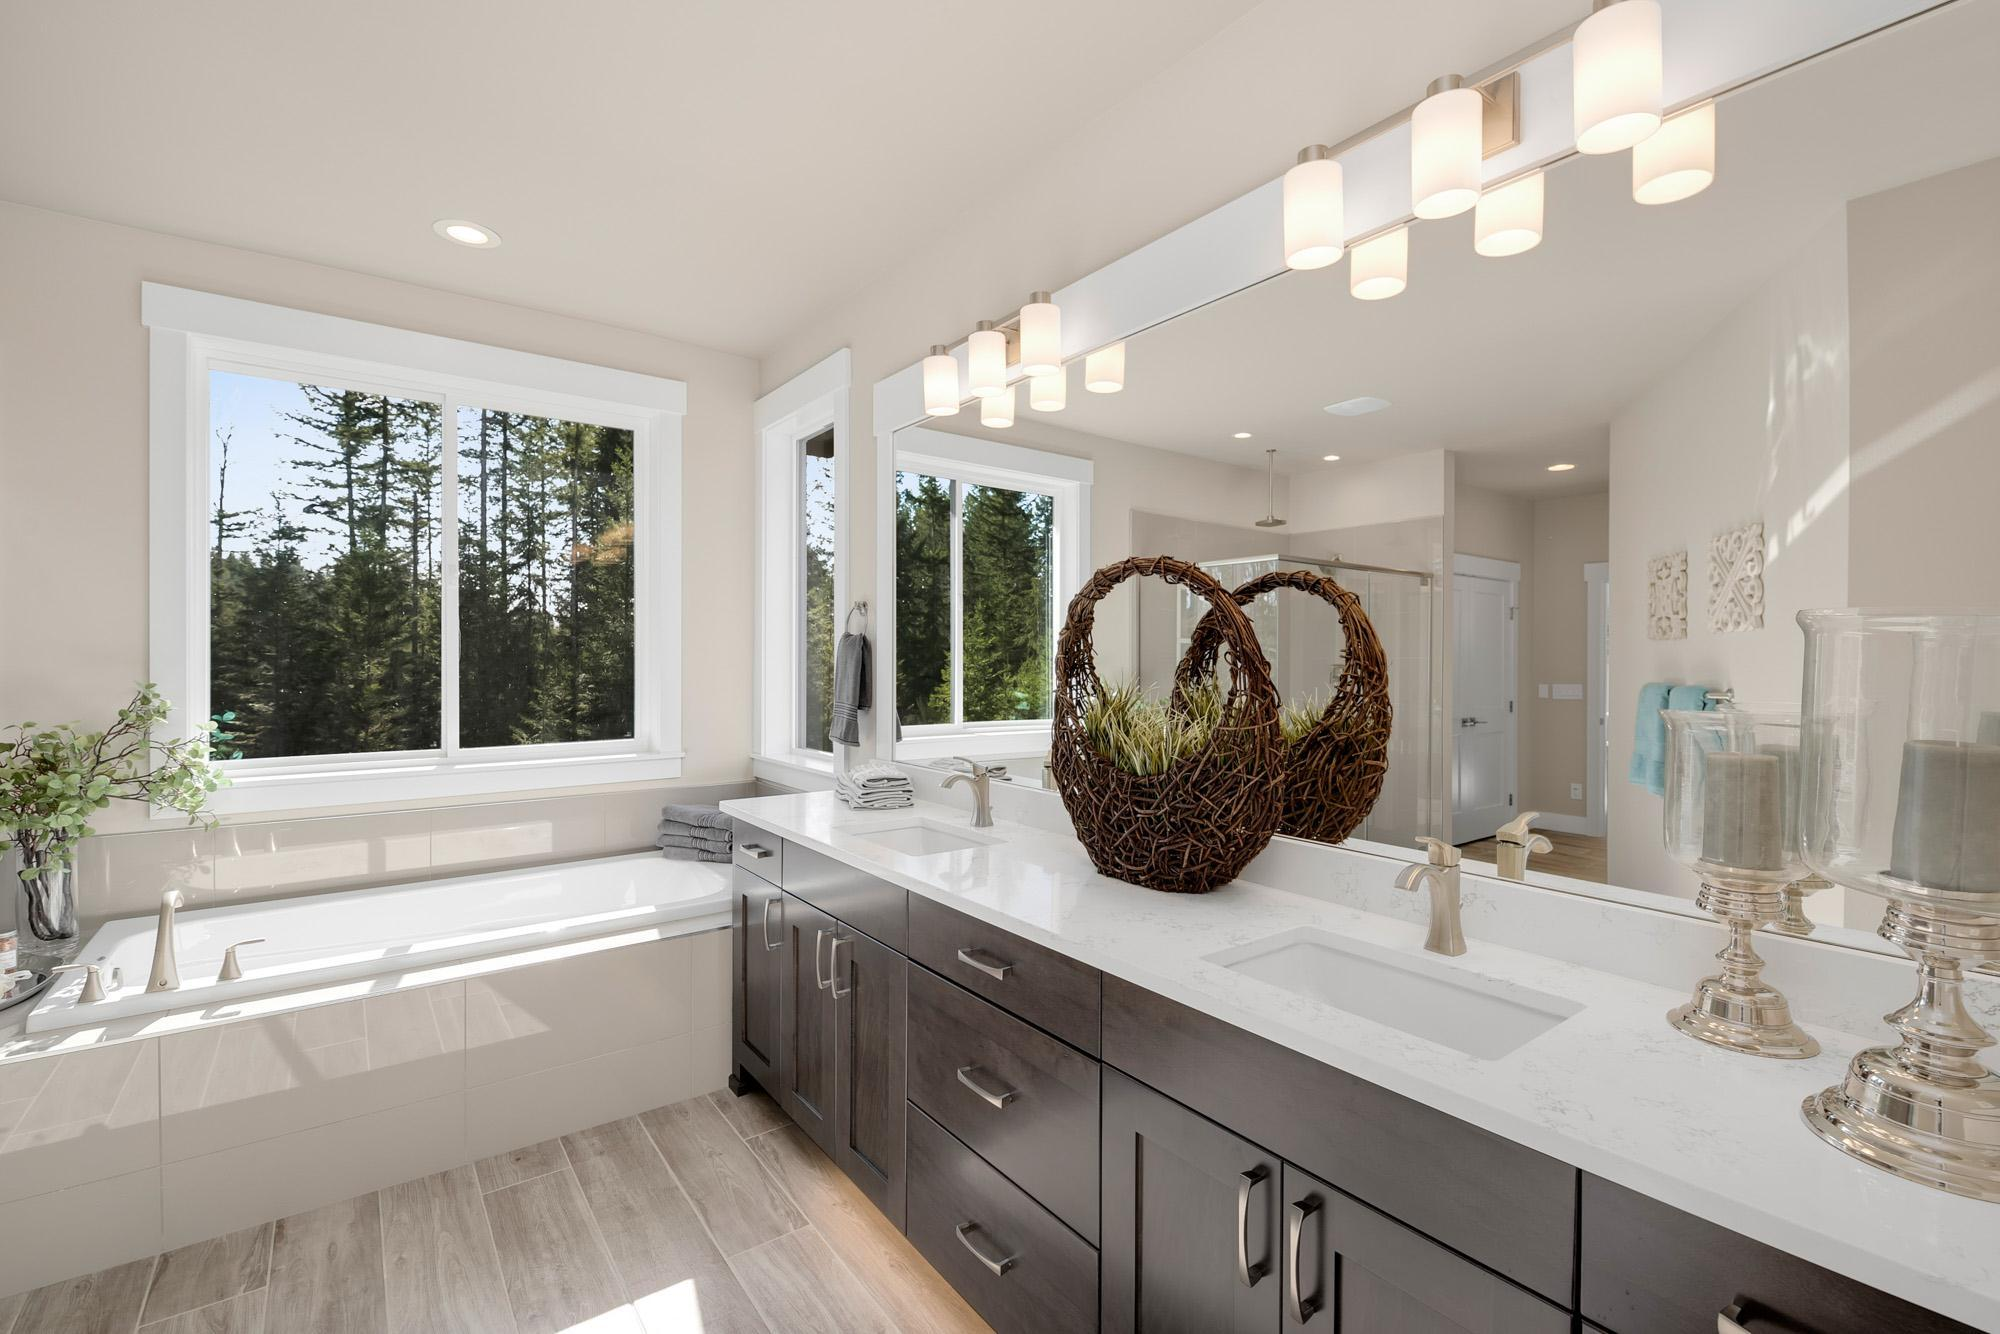 Bathroom featured in the Plan 263 By Schneider Family Homes in Seattle-Bellevue, WA